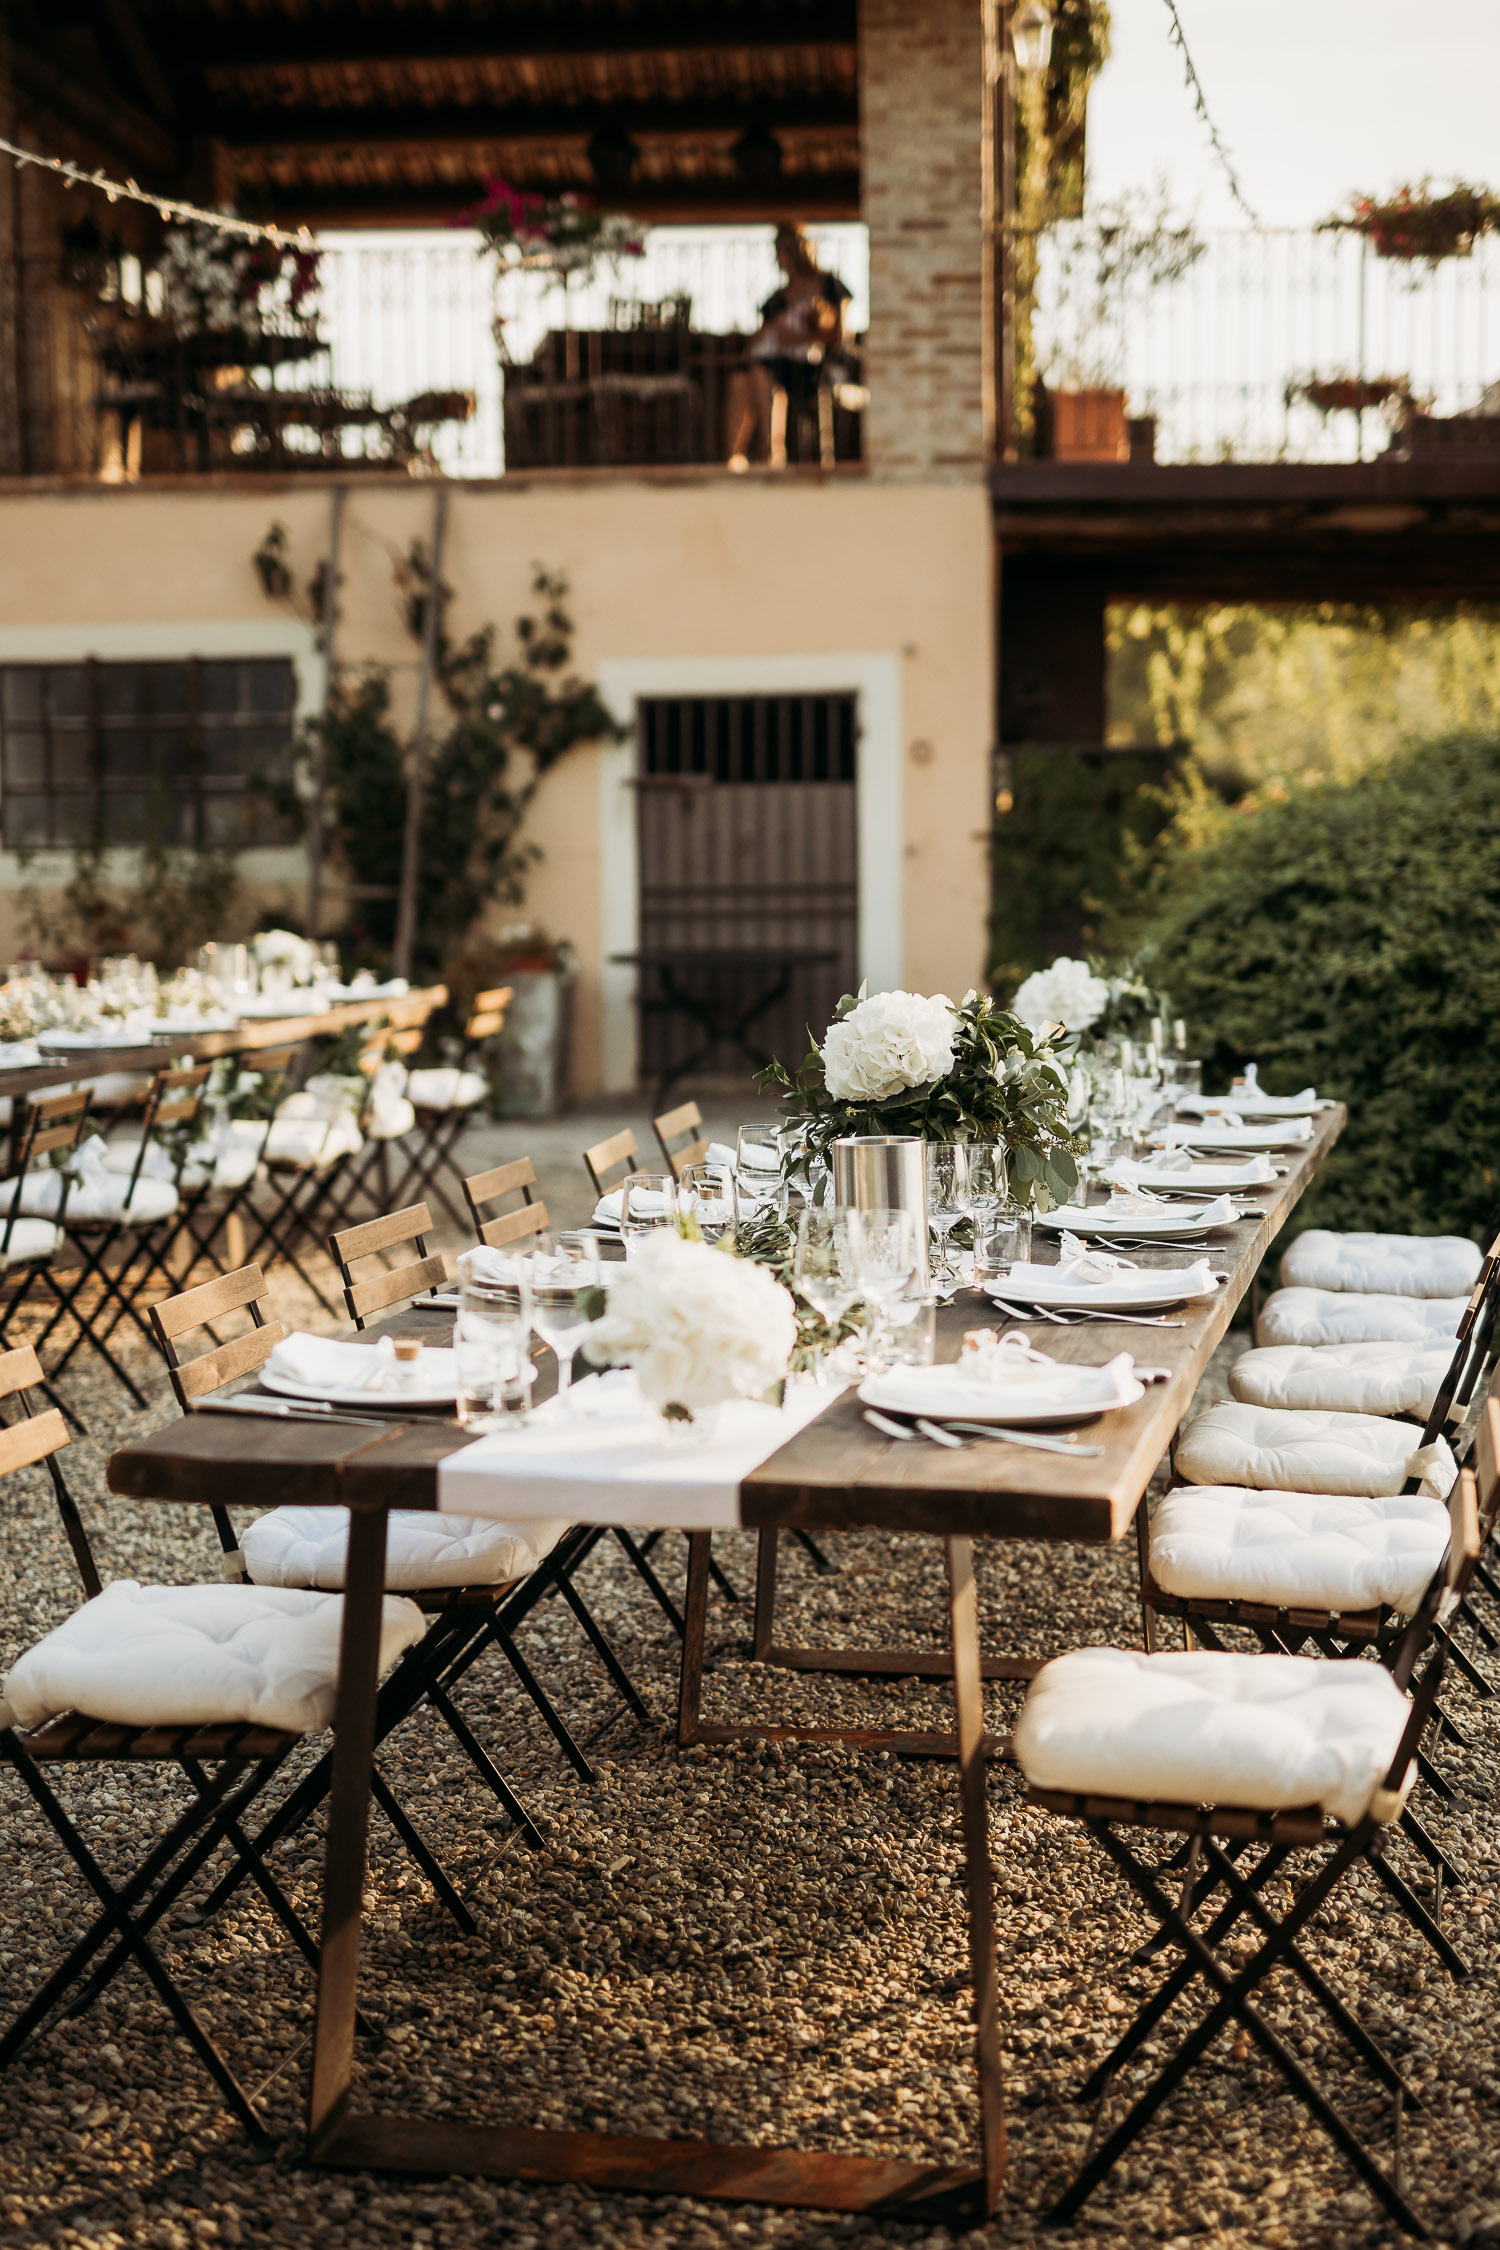 Rustic long table with white peonies and wood at La Villa Hotel in Mombaruzzo